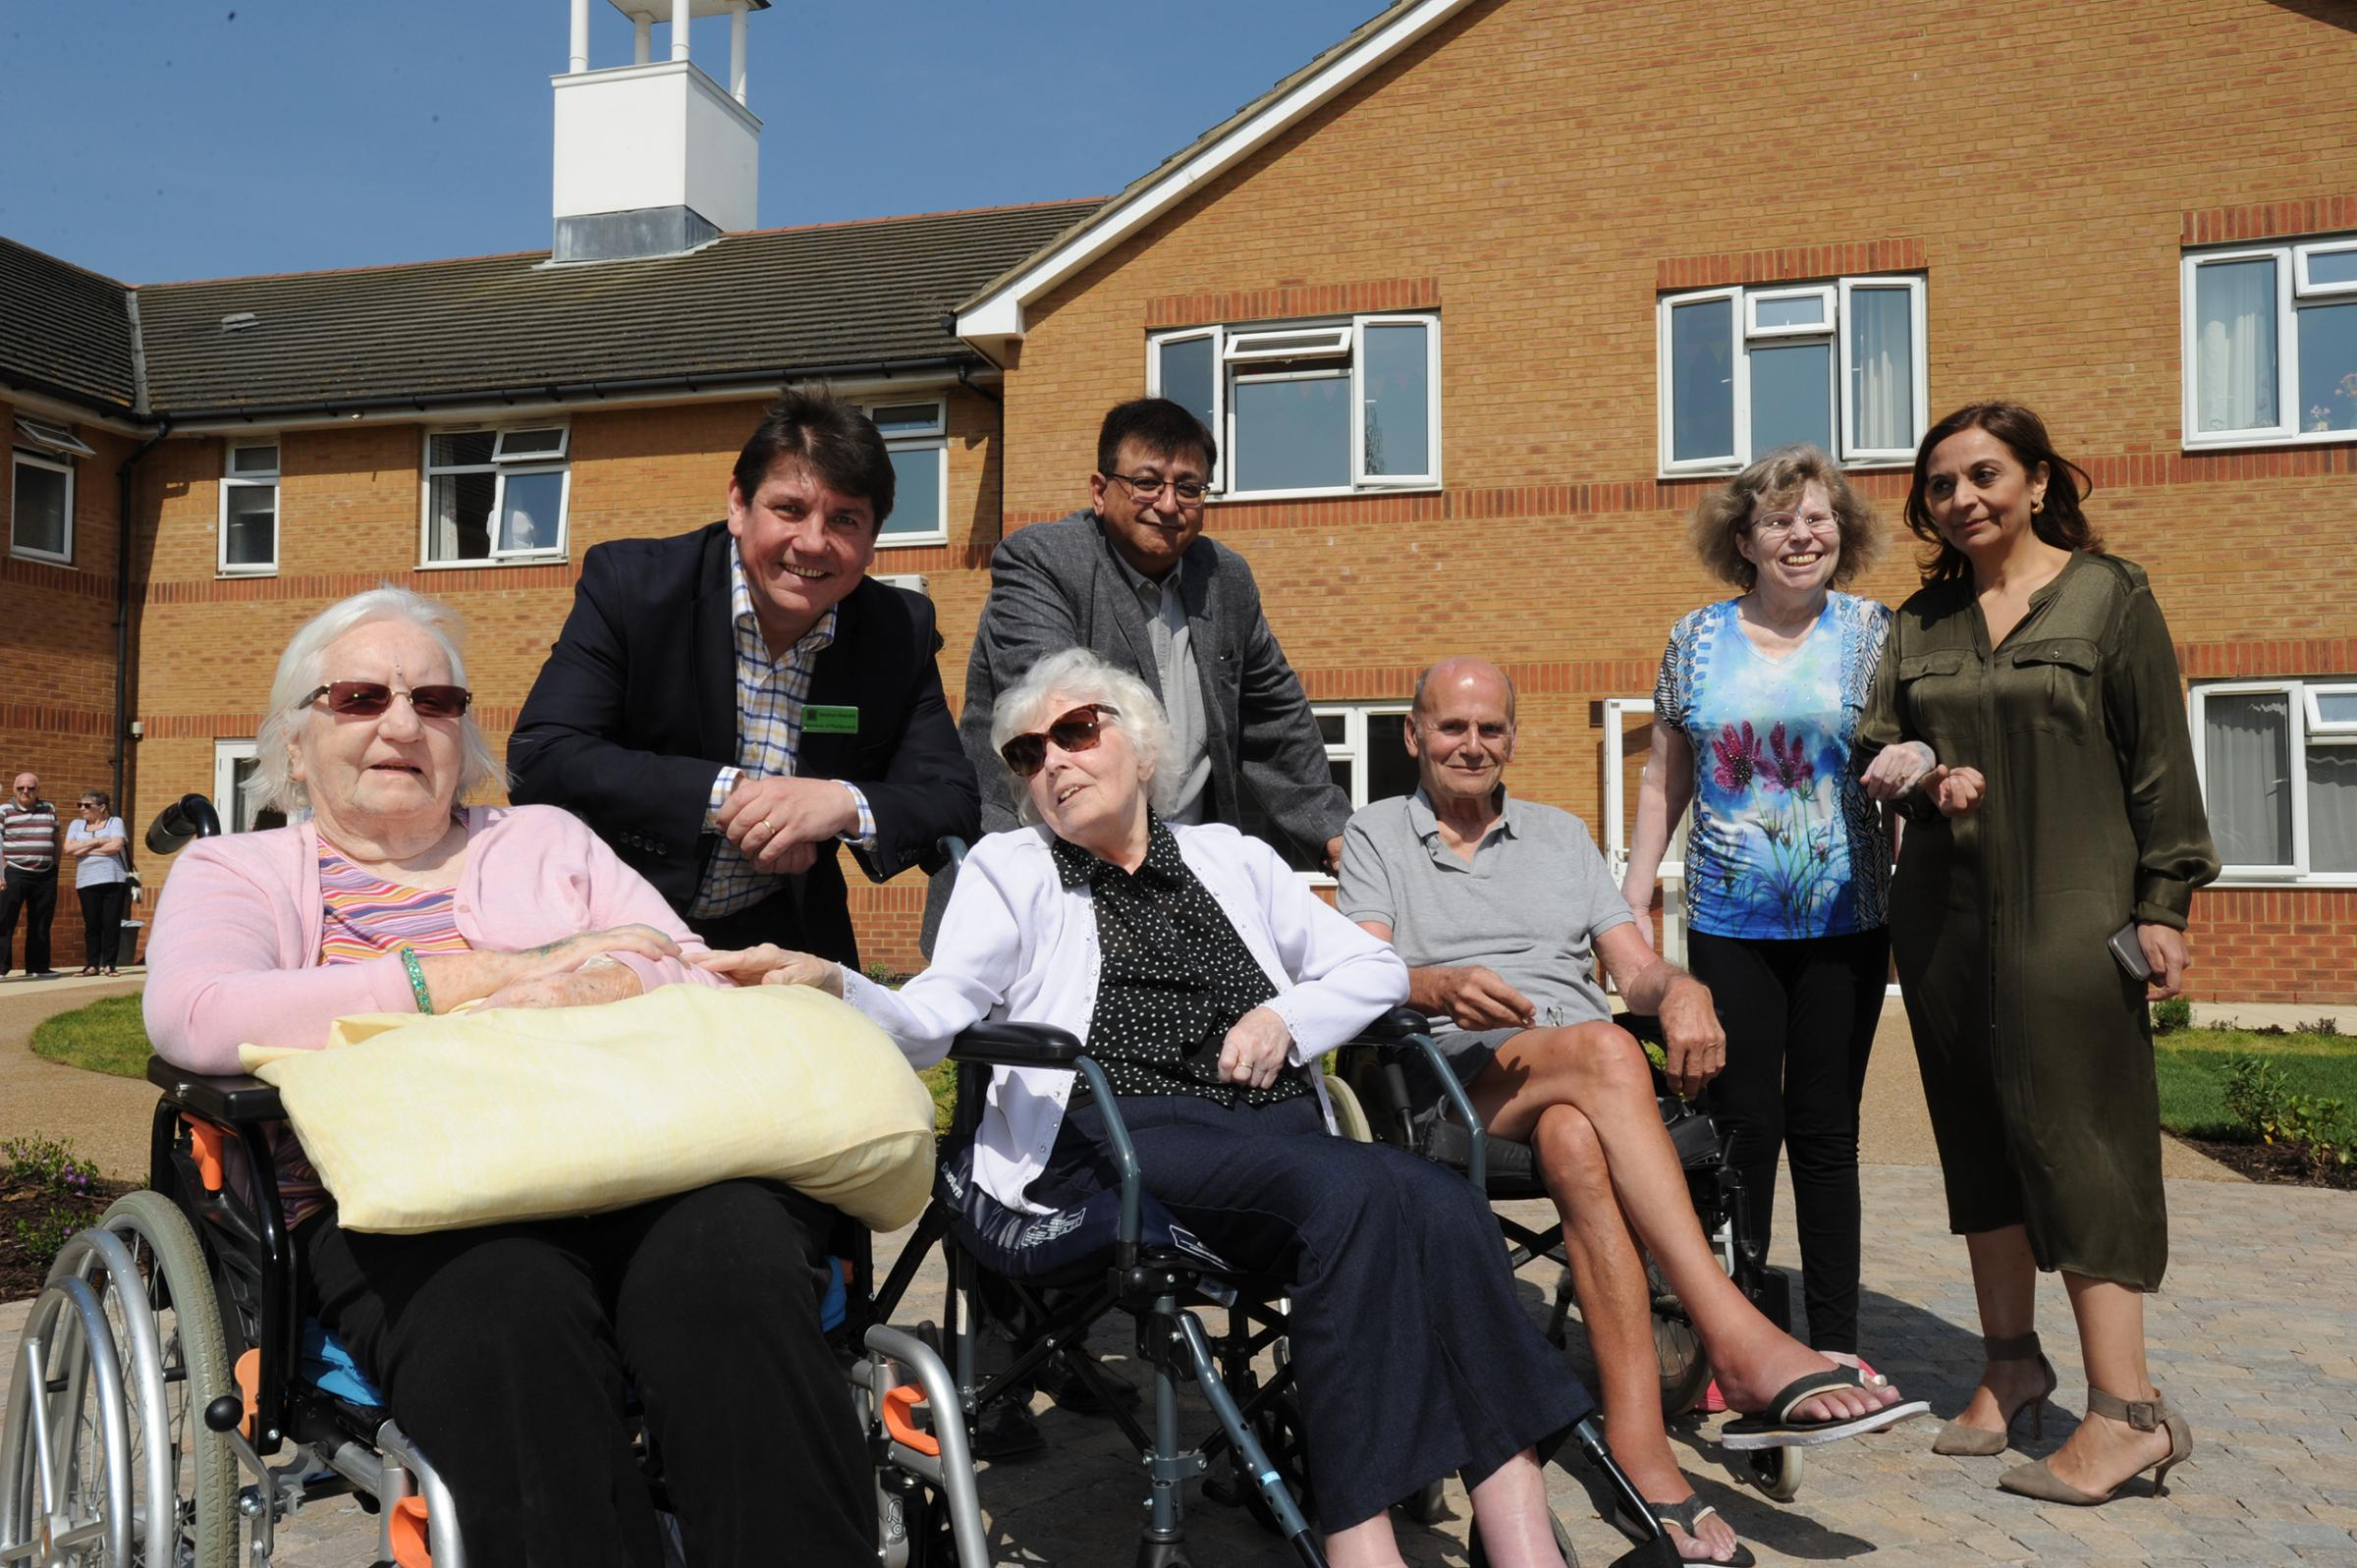 Gifford House Care Home, London Road, Bowers Gifford. L-R: AnnBruce,  Stephen Metcalfe MP, Alice Donnelly,, Manish Chotai, Michael Milne, Susan Moran, and Saloni Chotai. Picture Steve O'Connell 21-04-18